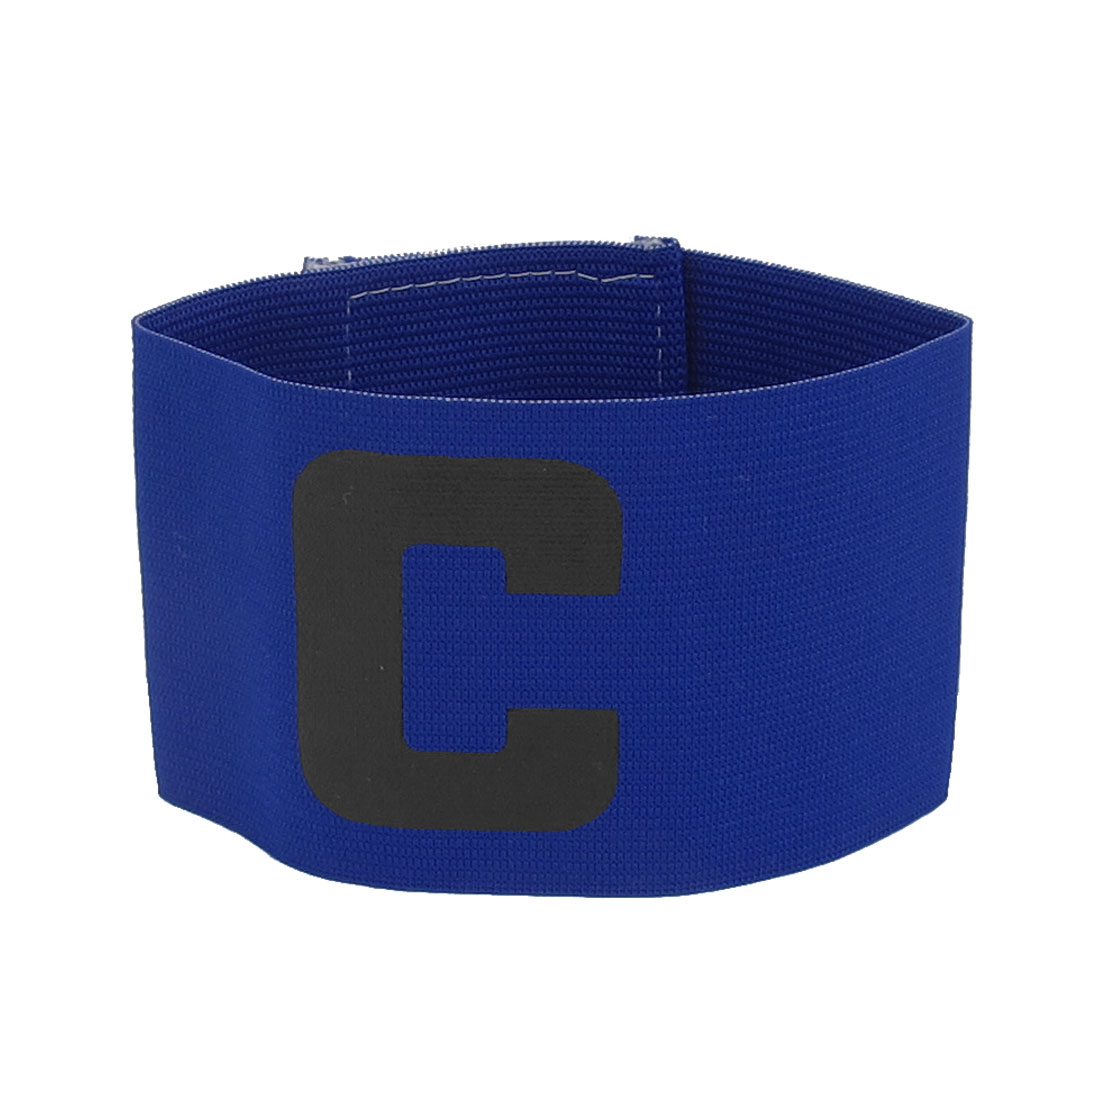 Letter C Printed Elastic Football Tension Soccer Sports Captain Armband Badge Blue